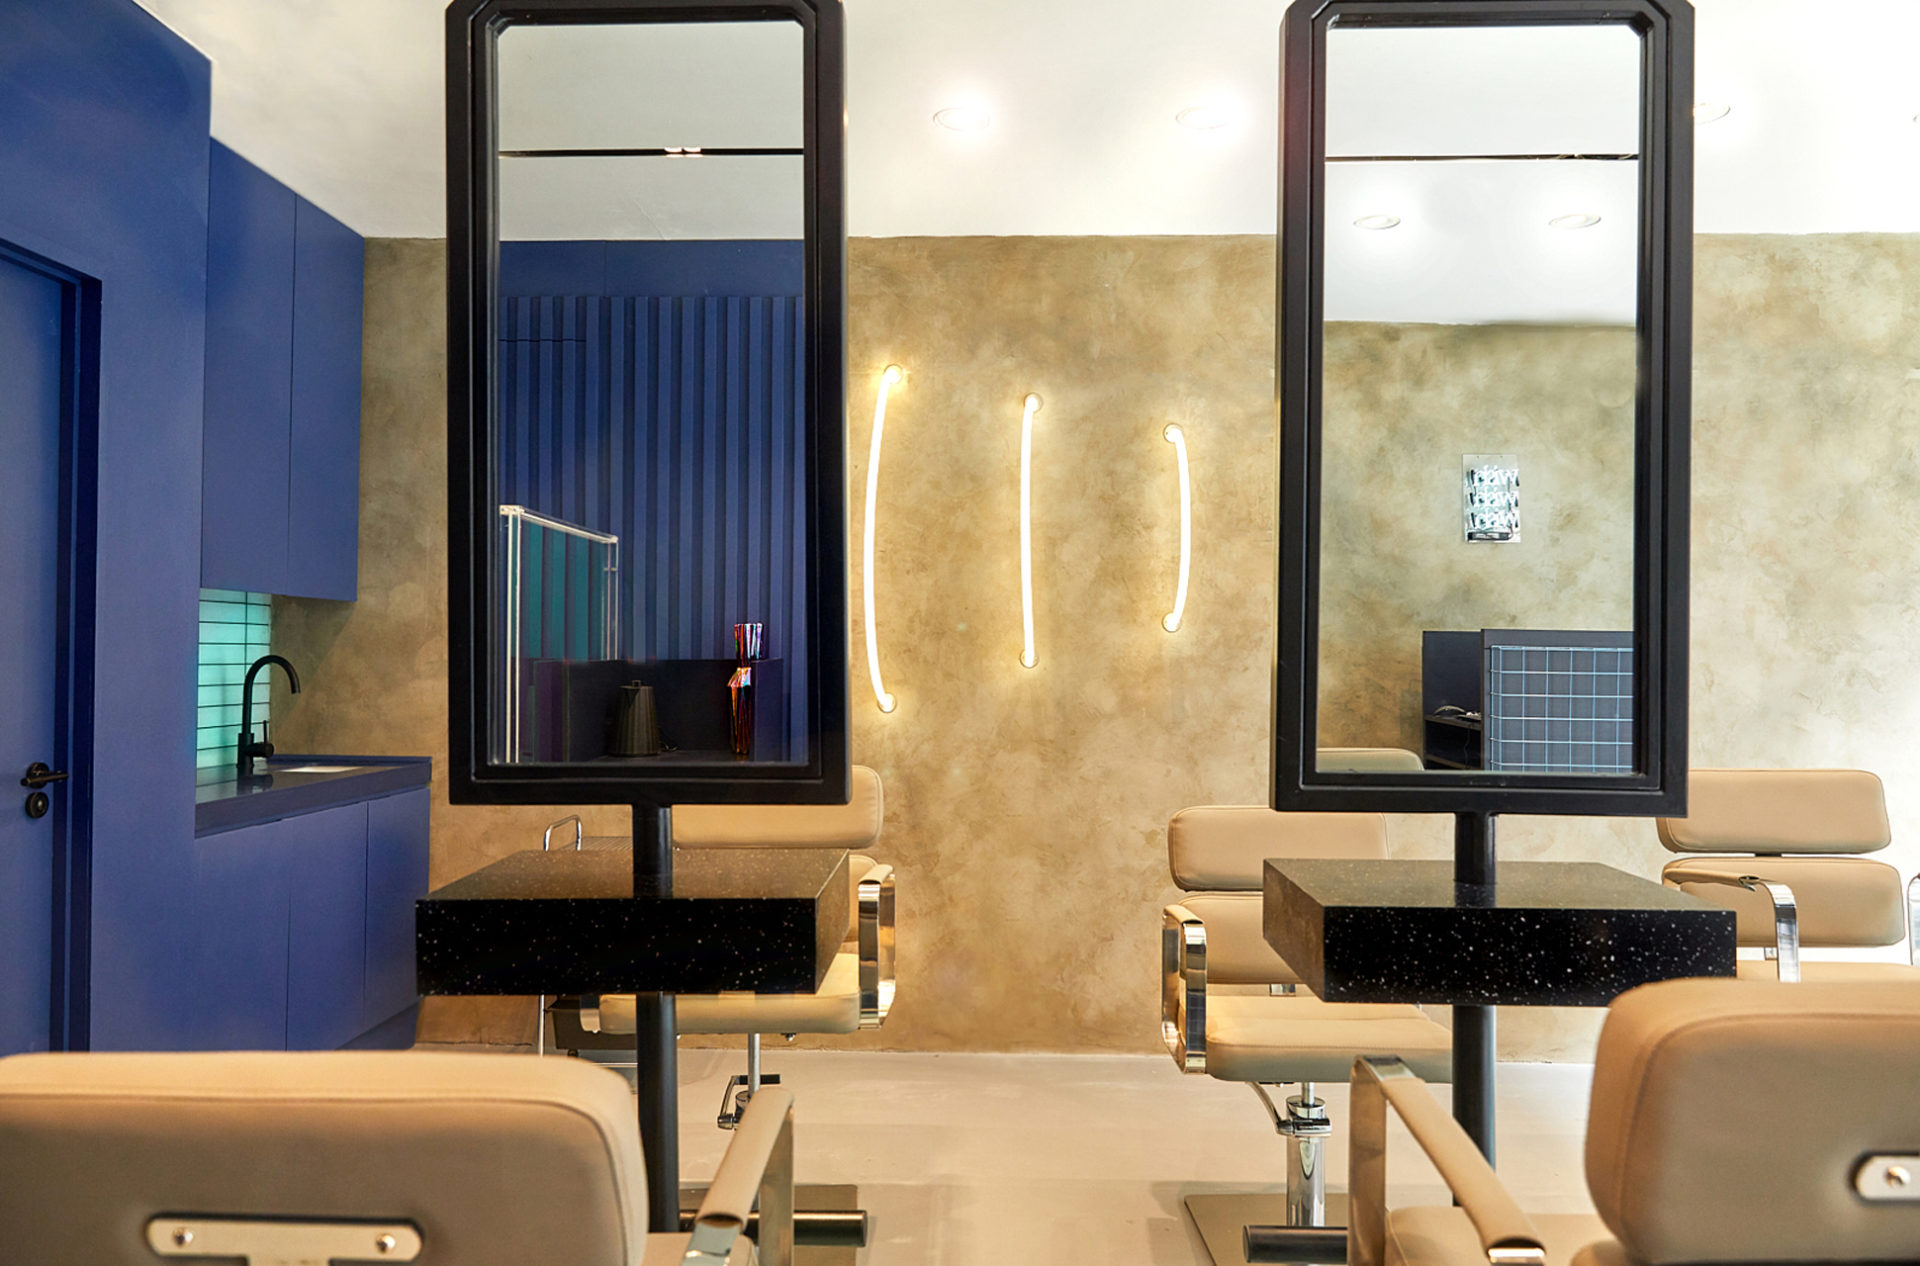 hairdressing experts in central London